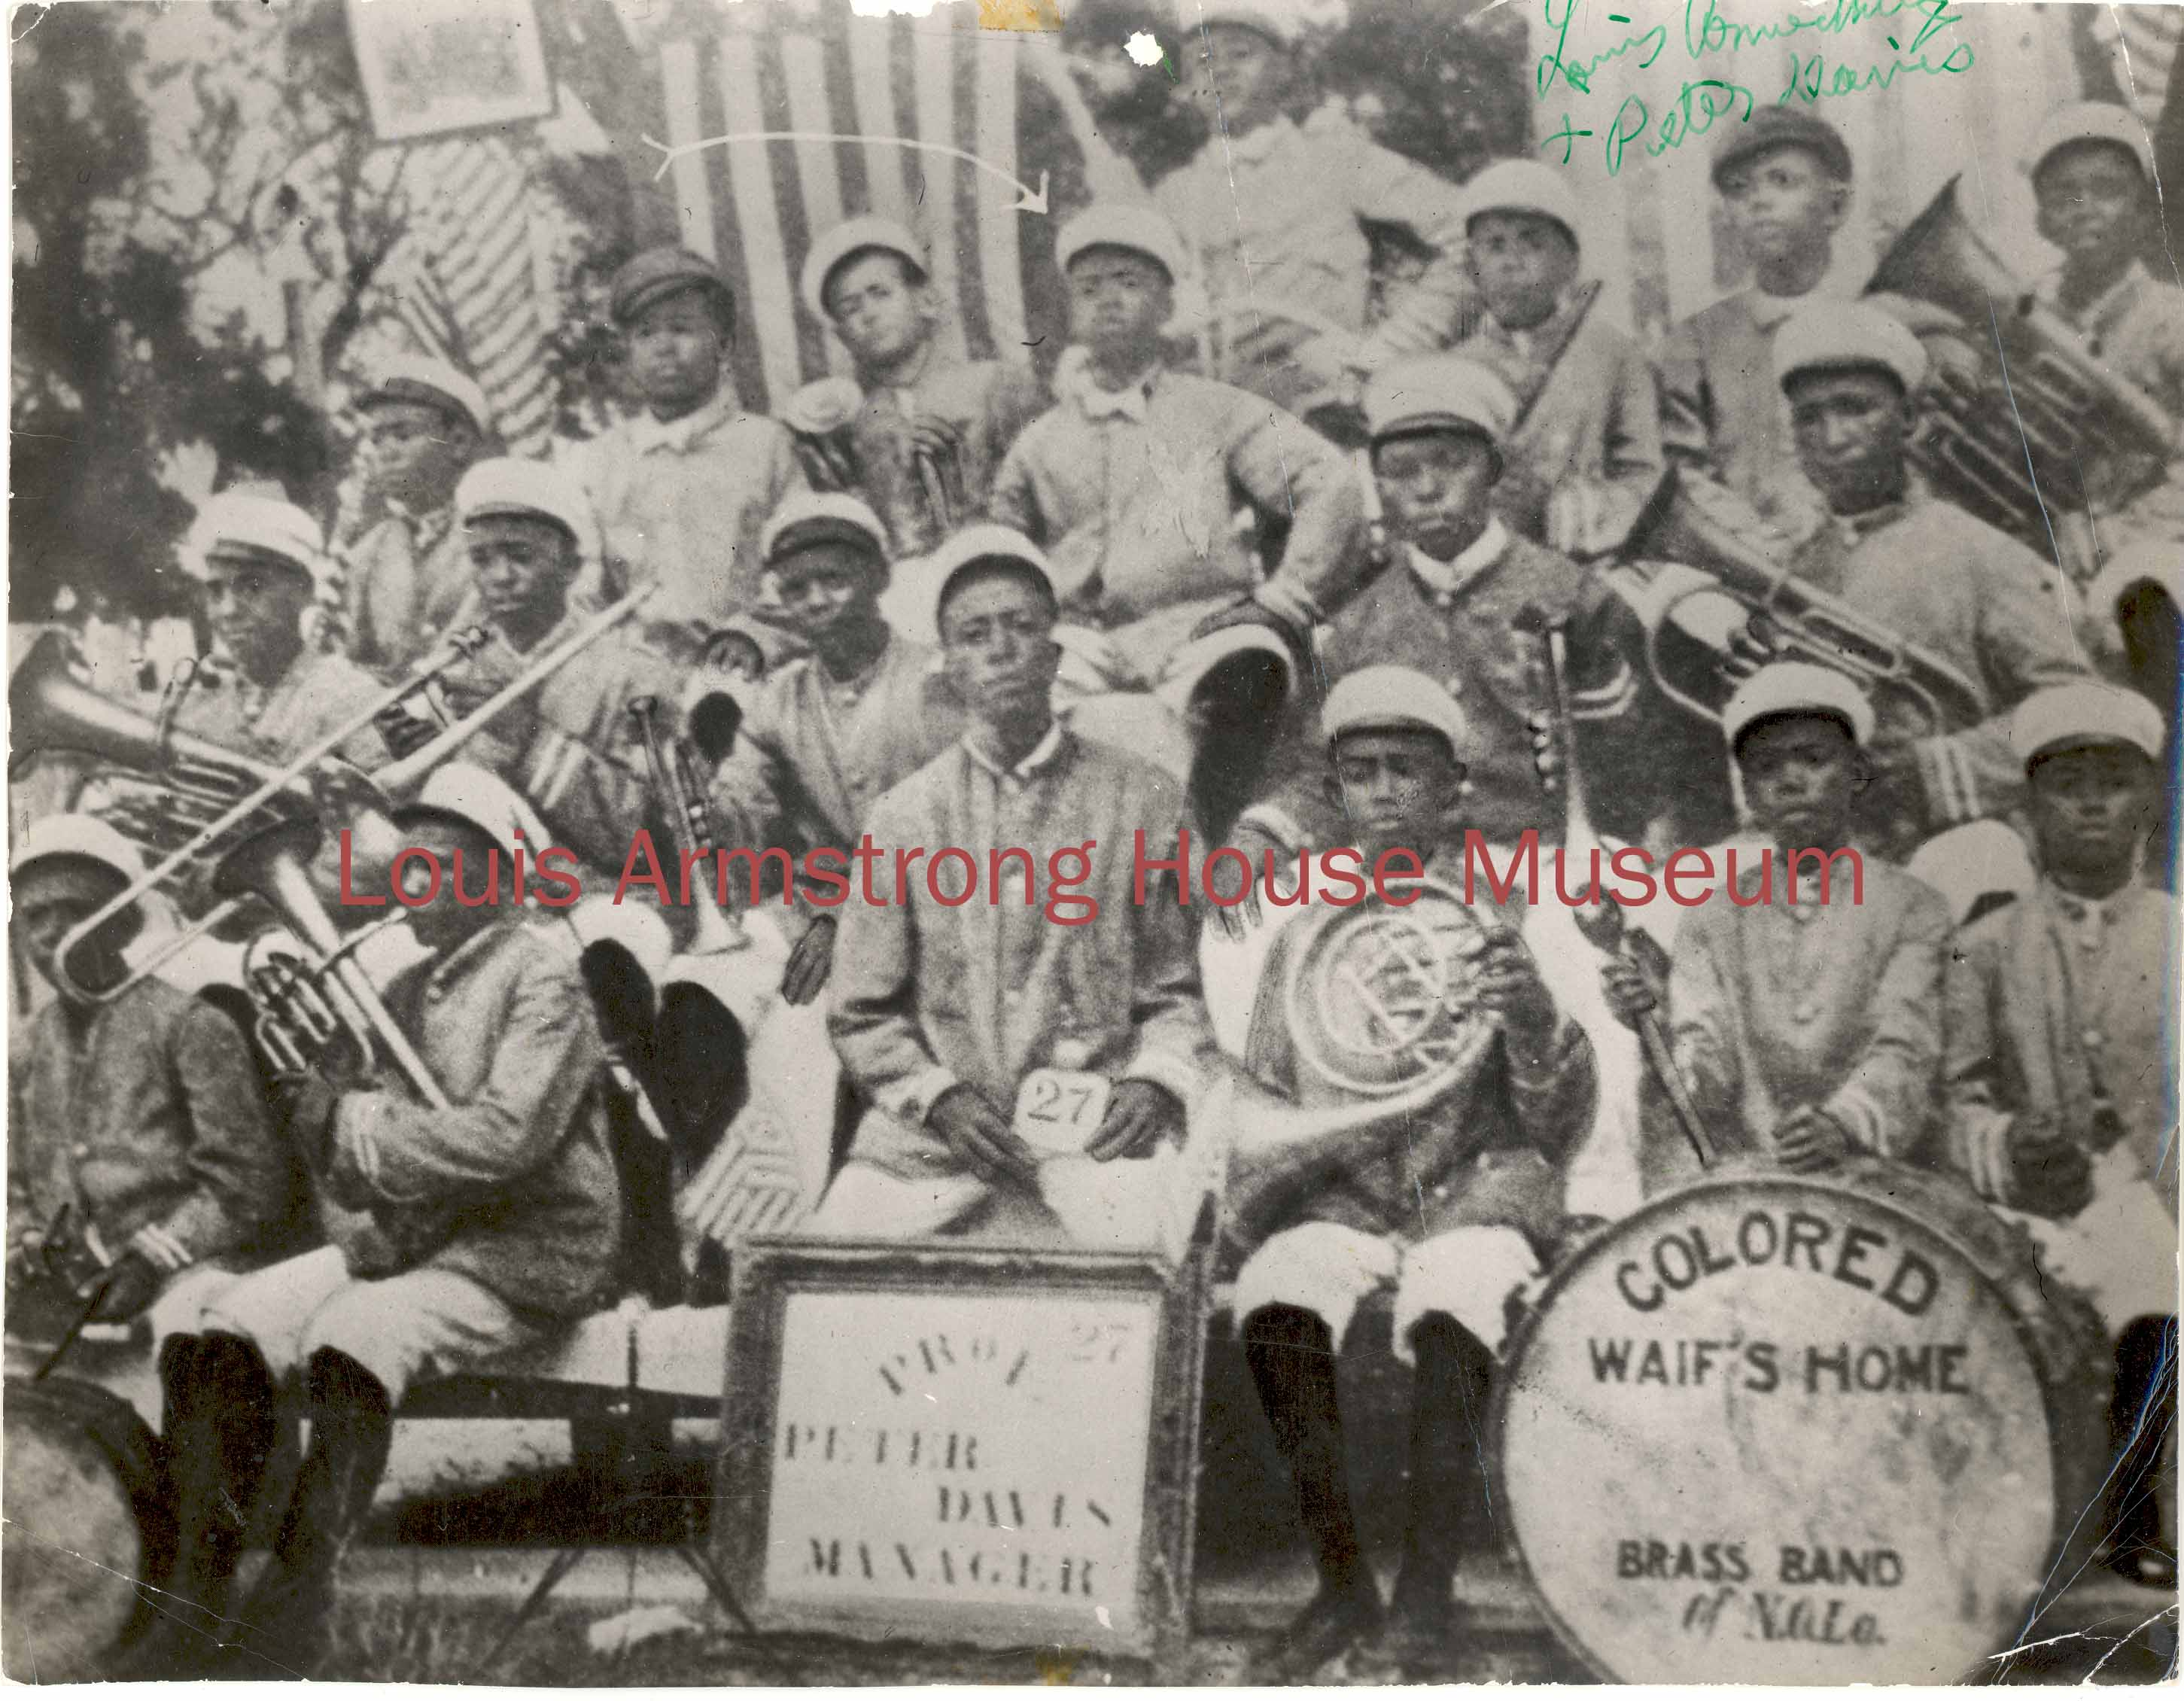 Gift of Peter Gold; Courtesy of the Louis Armstrong House Museum The earliest surviving photograph of Armstrong, this 1913 image depicts him as the confident leader of the Waif's Home Brass Band, a memory he always treasured.